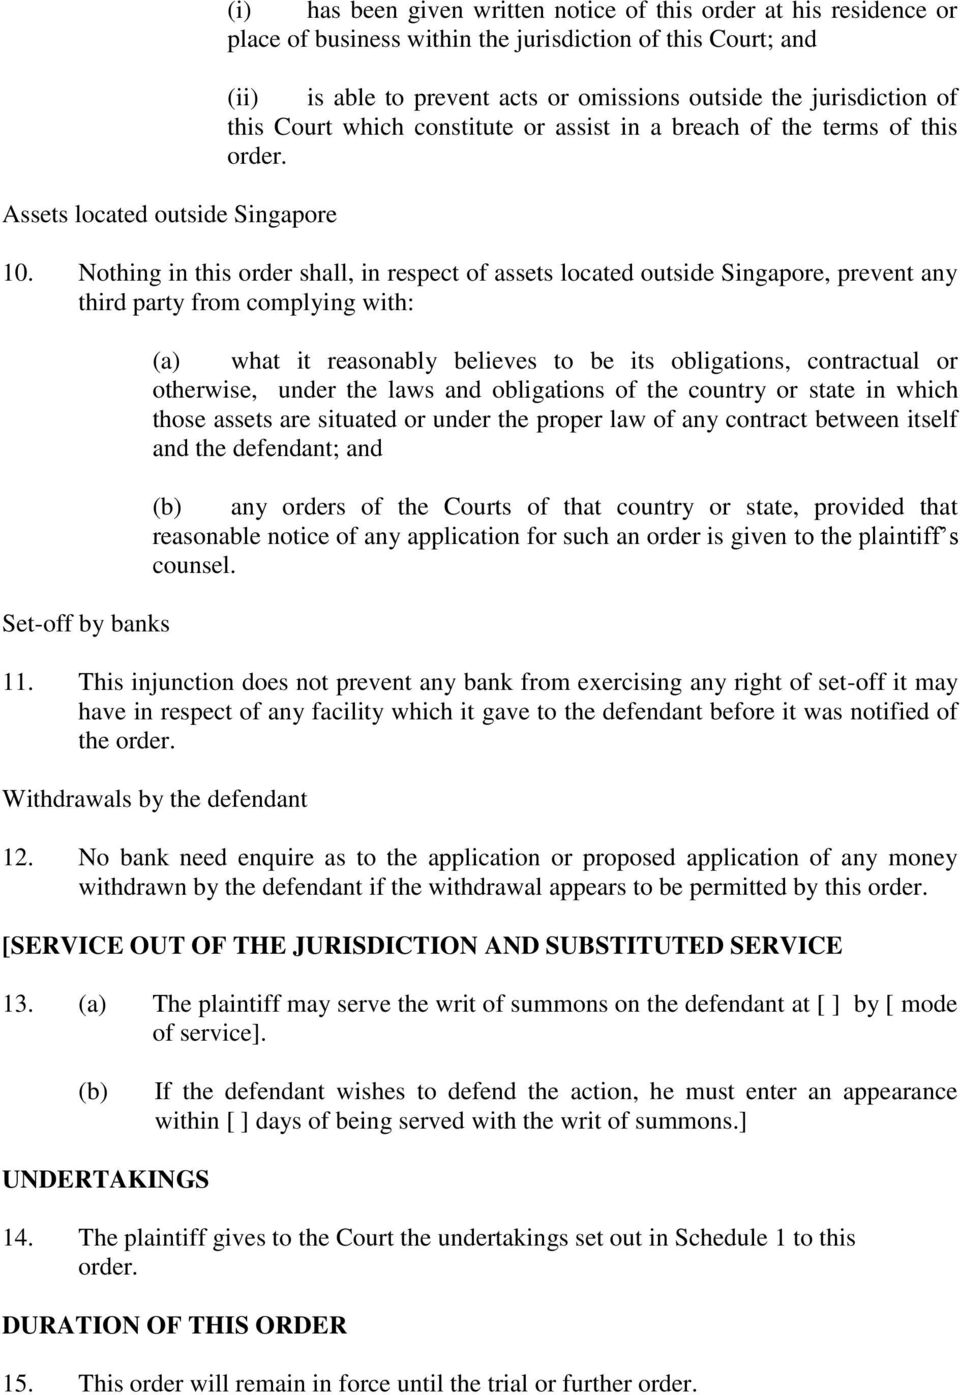 Nothing in this order shall, in respect of assets located outside Singapore, prevent any third party from complying with: Set-off by banks what it reasonably believes to be its obligations,